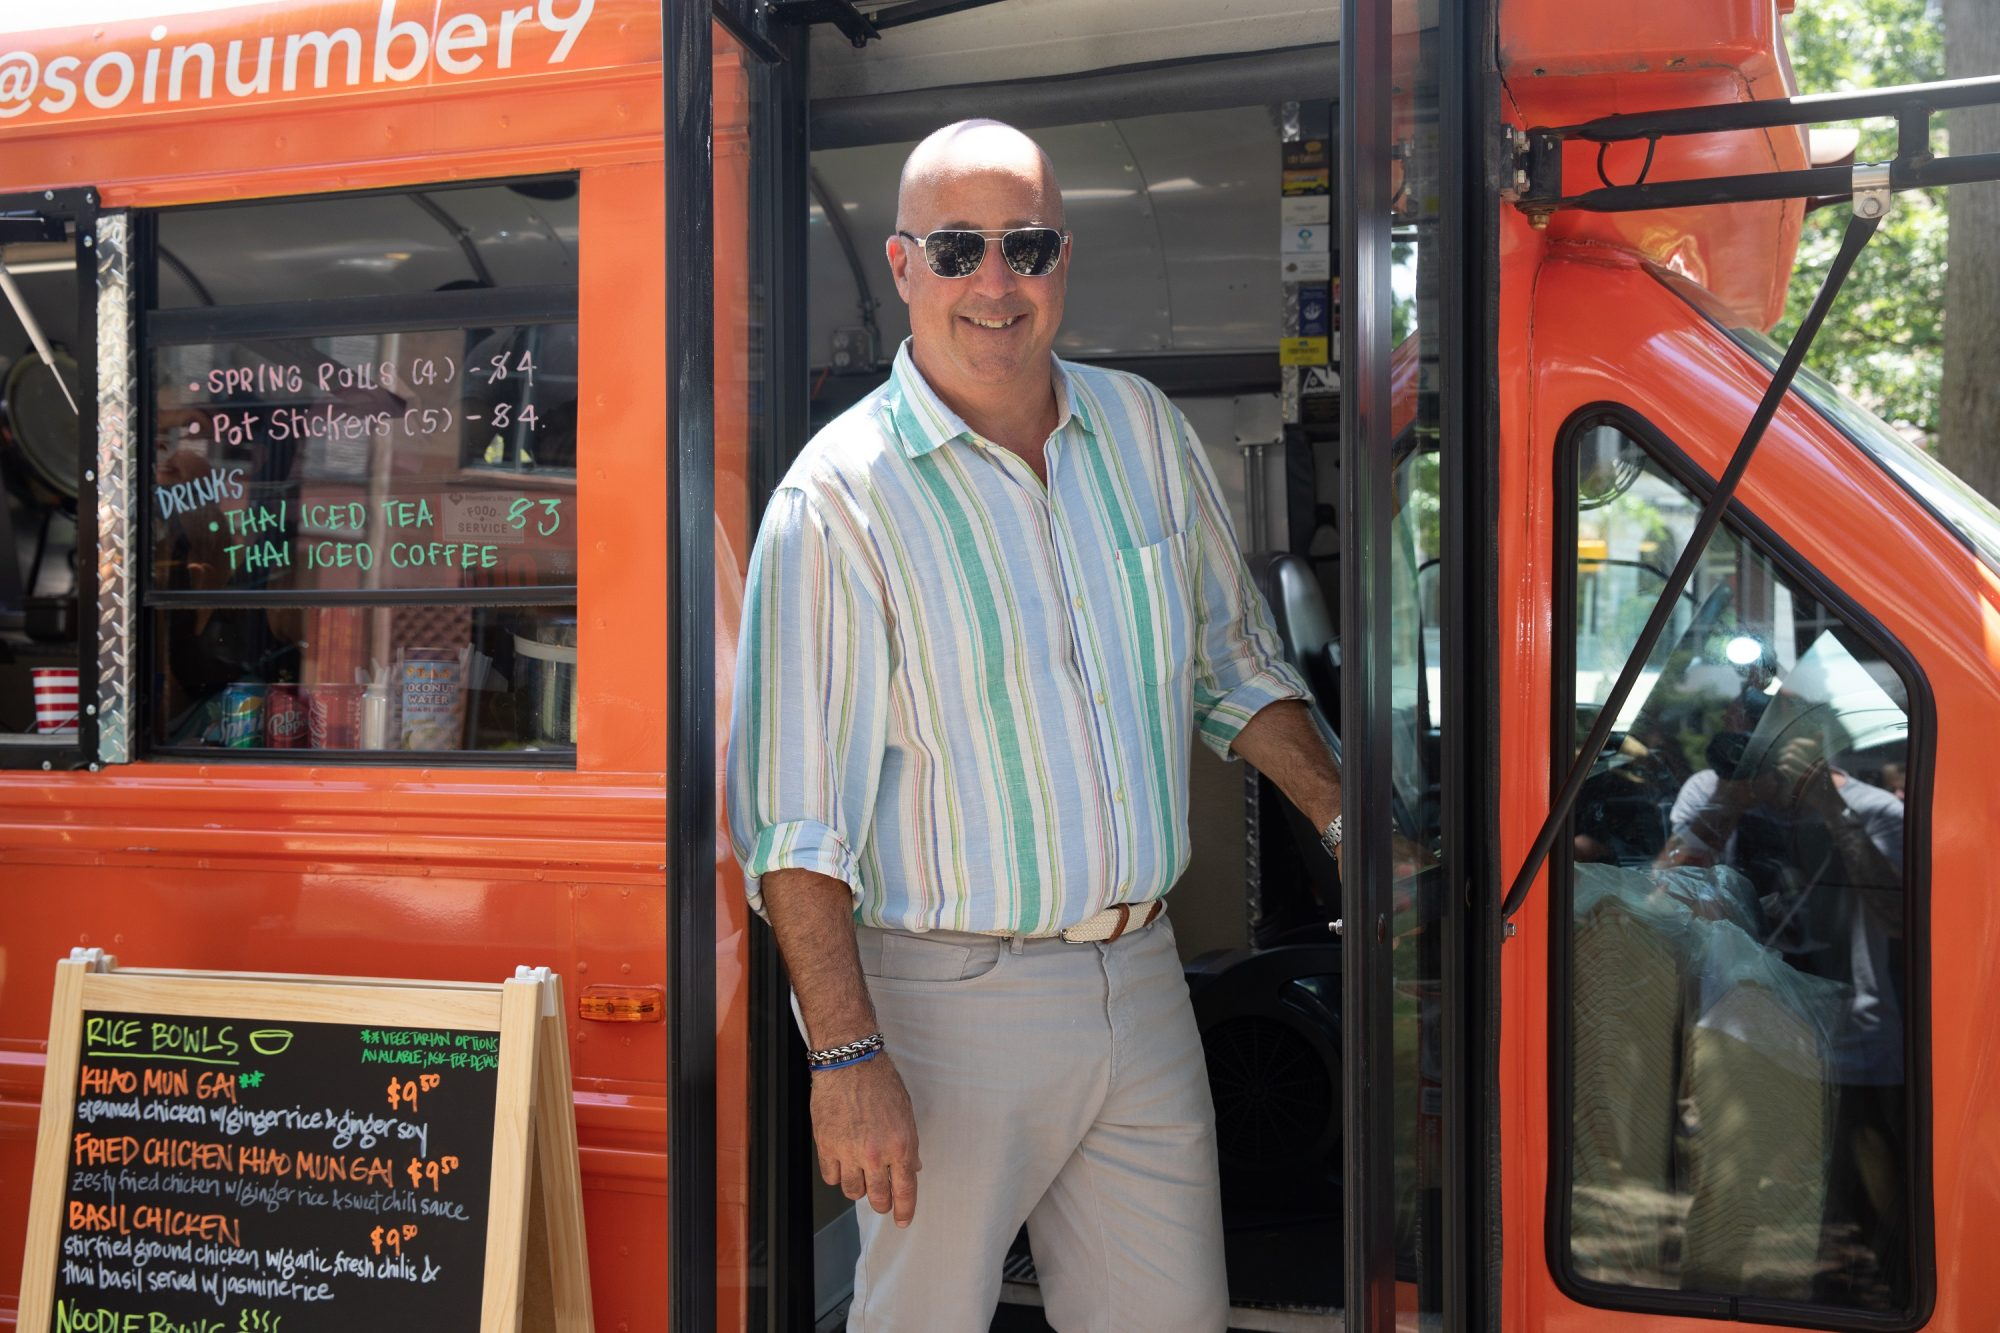 Andrew Zimmern Drops $10,000 Tips at Food Trucks on Upcoming Food Network Series